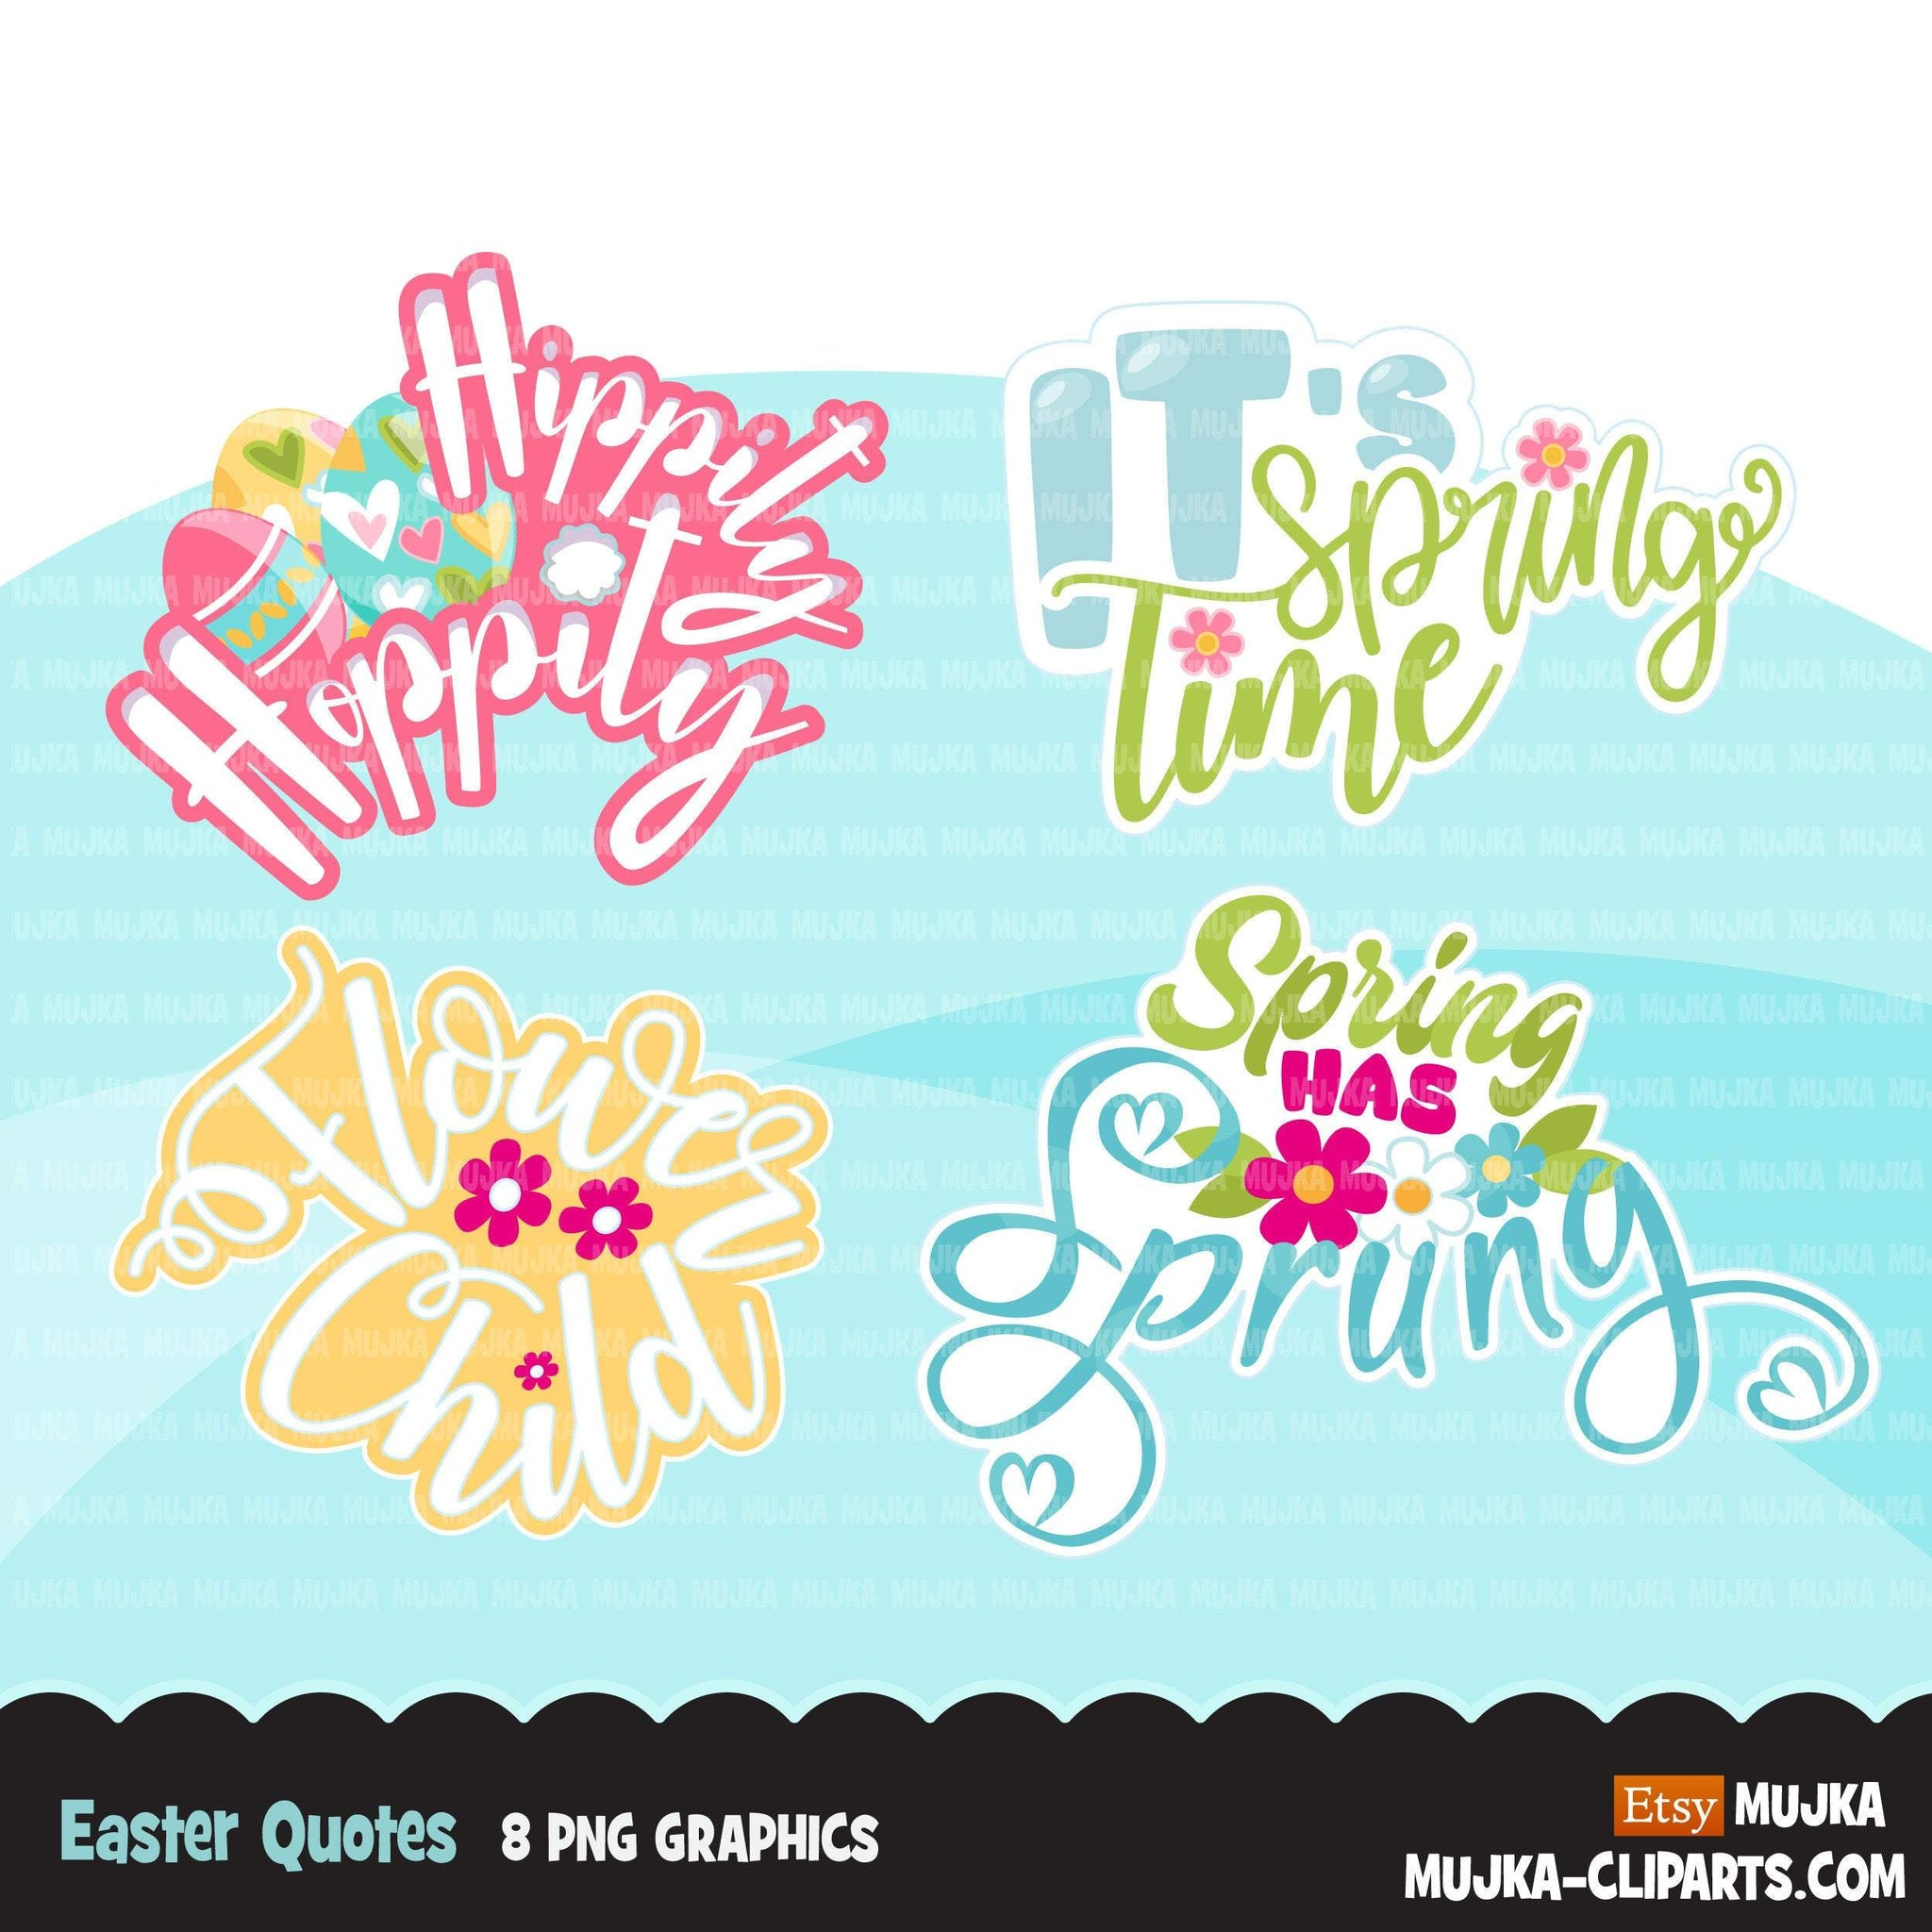 Easter Quotes Clipart, Spring has sprung, flower child, it's spring time, hippity hoppity graphics, sublimation PNG commercial use clip art